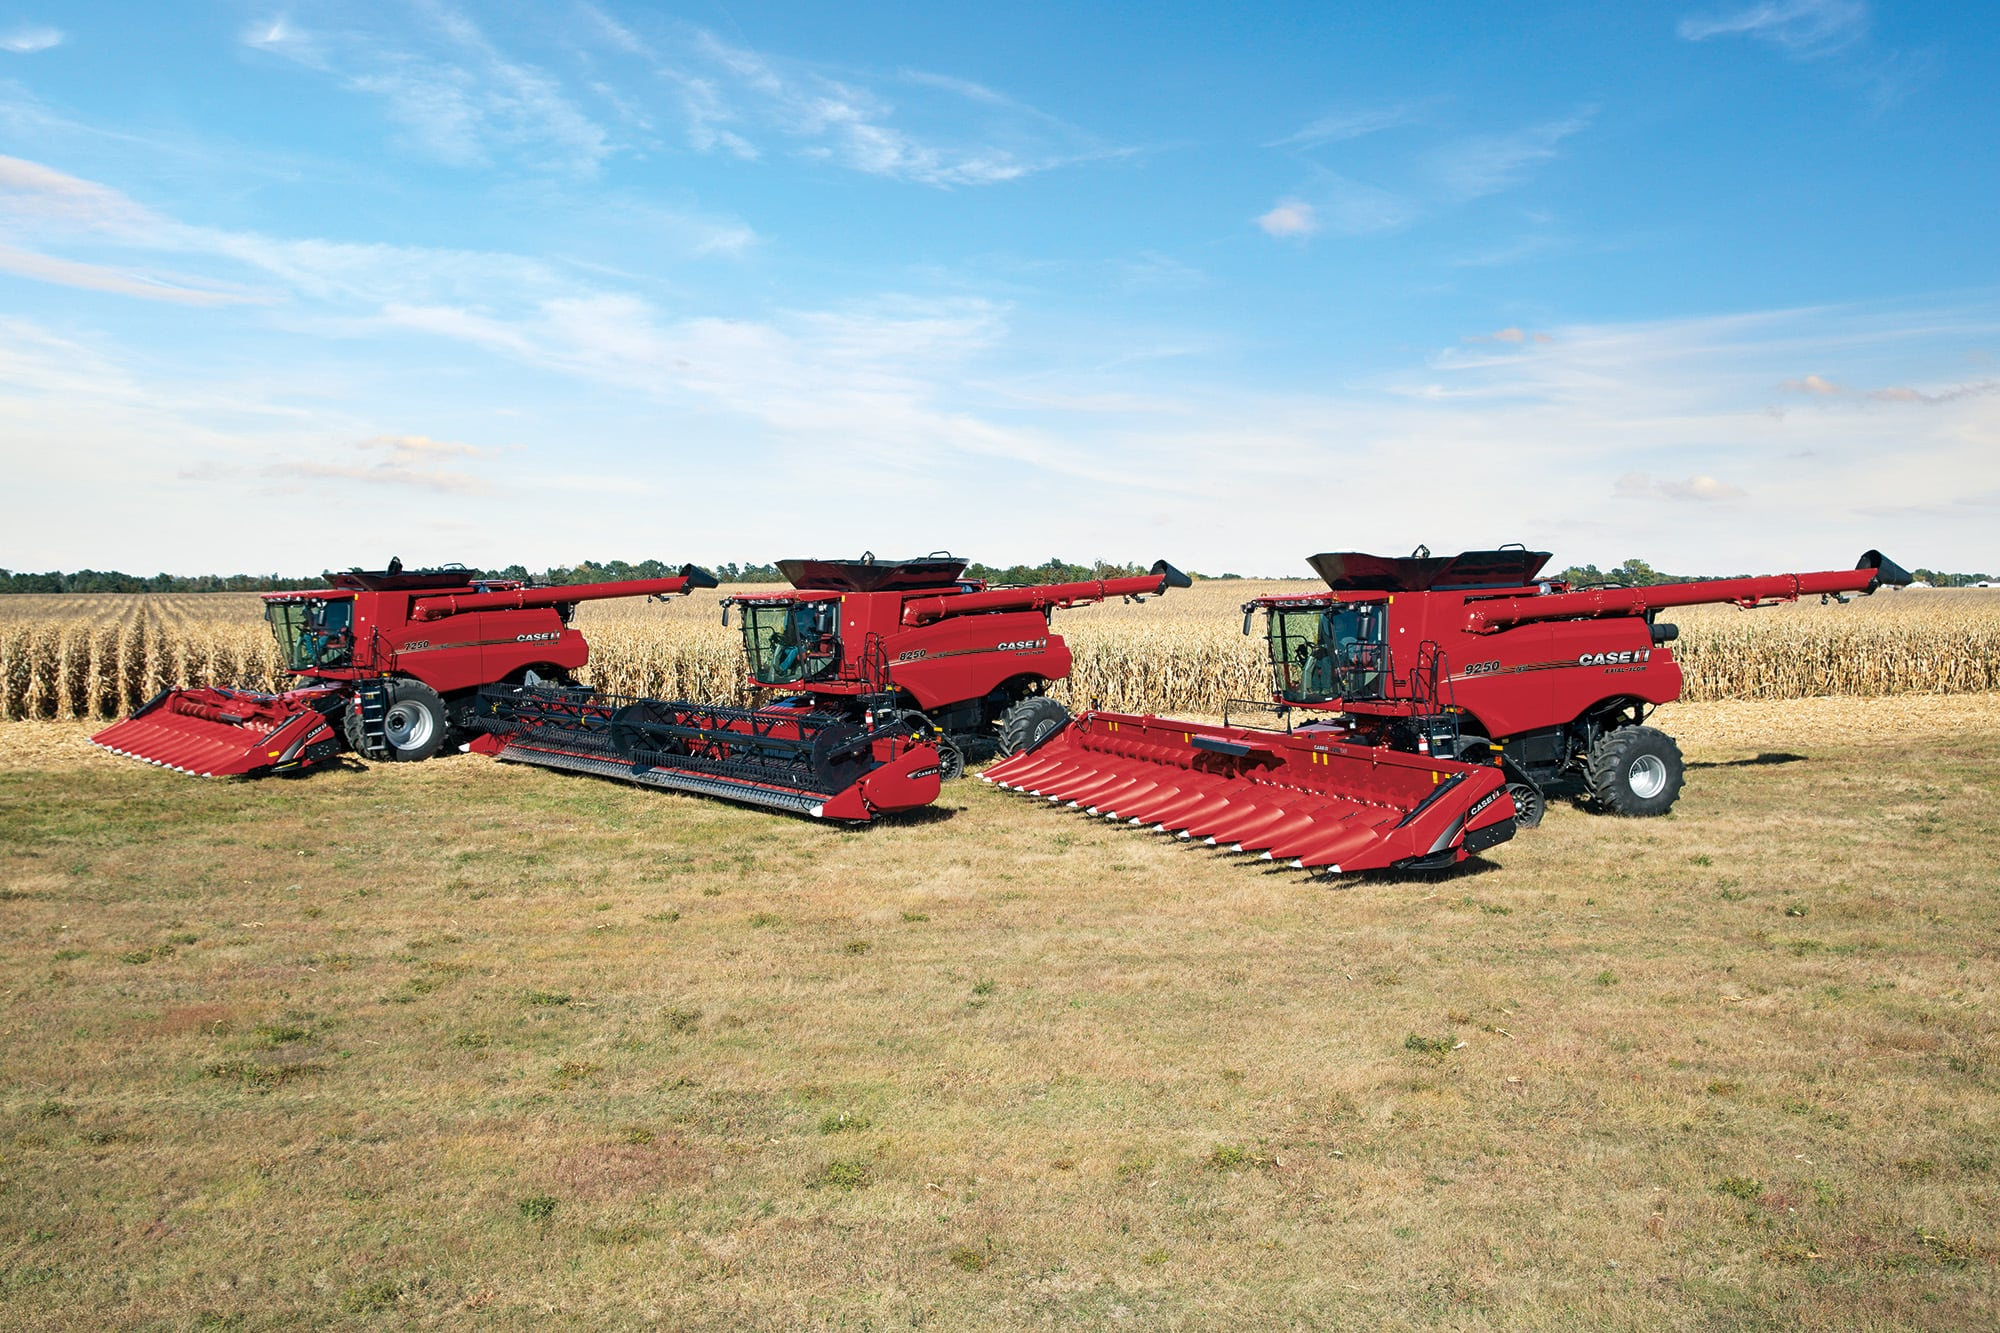 High-capacity, High-efficiency Harvesting